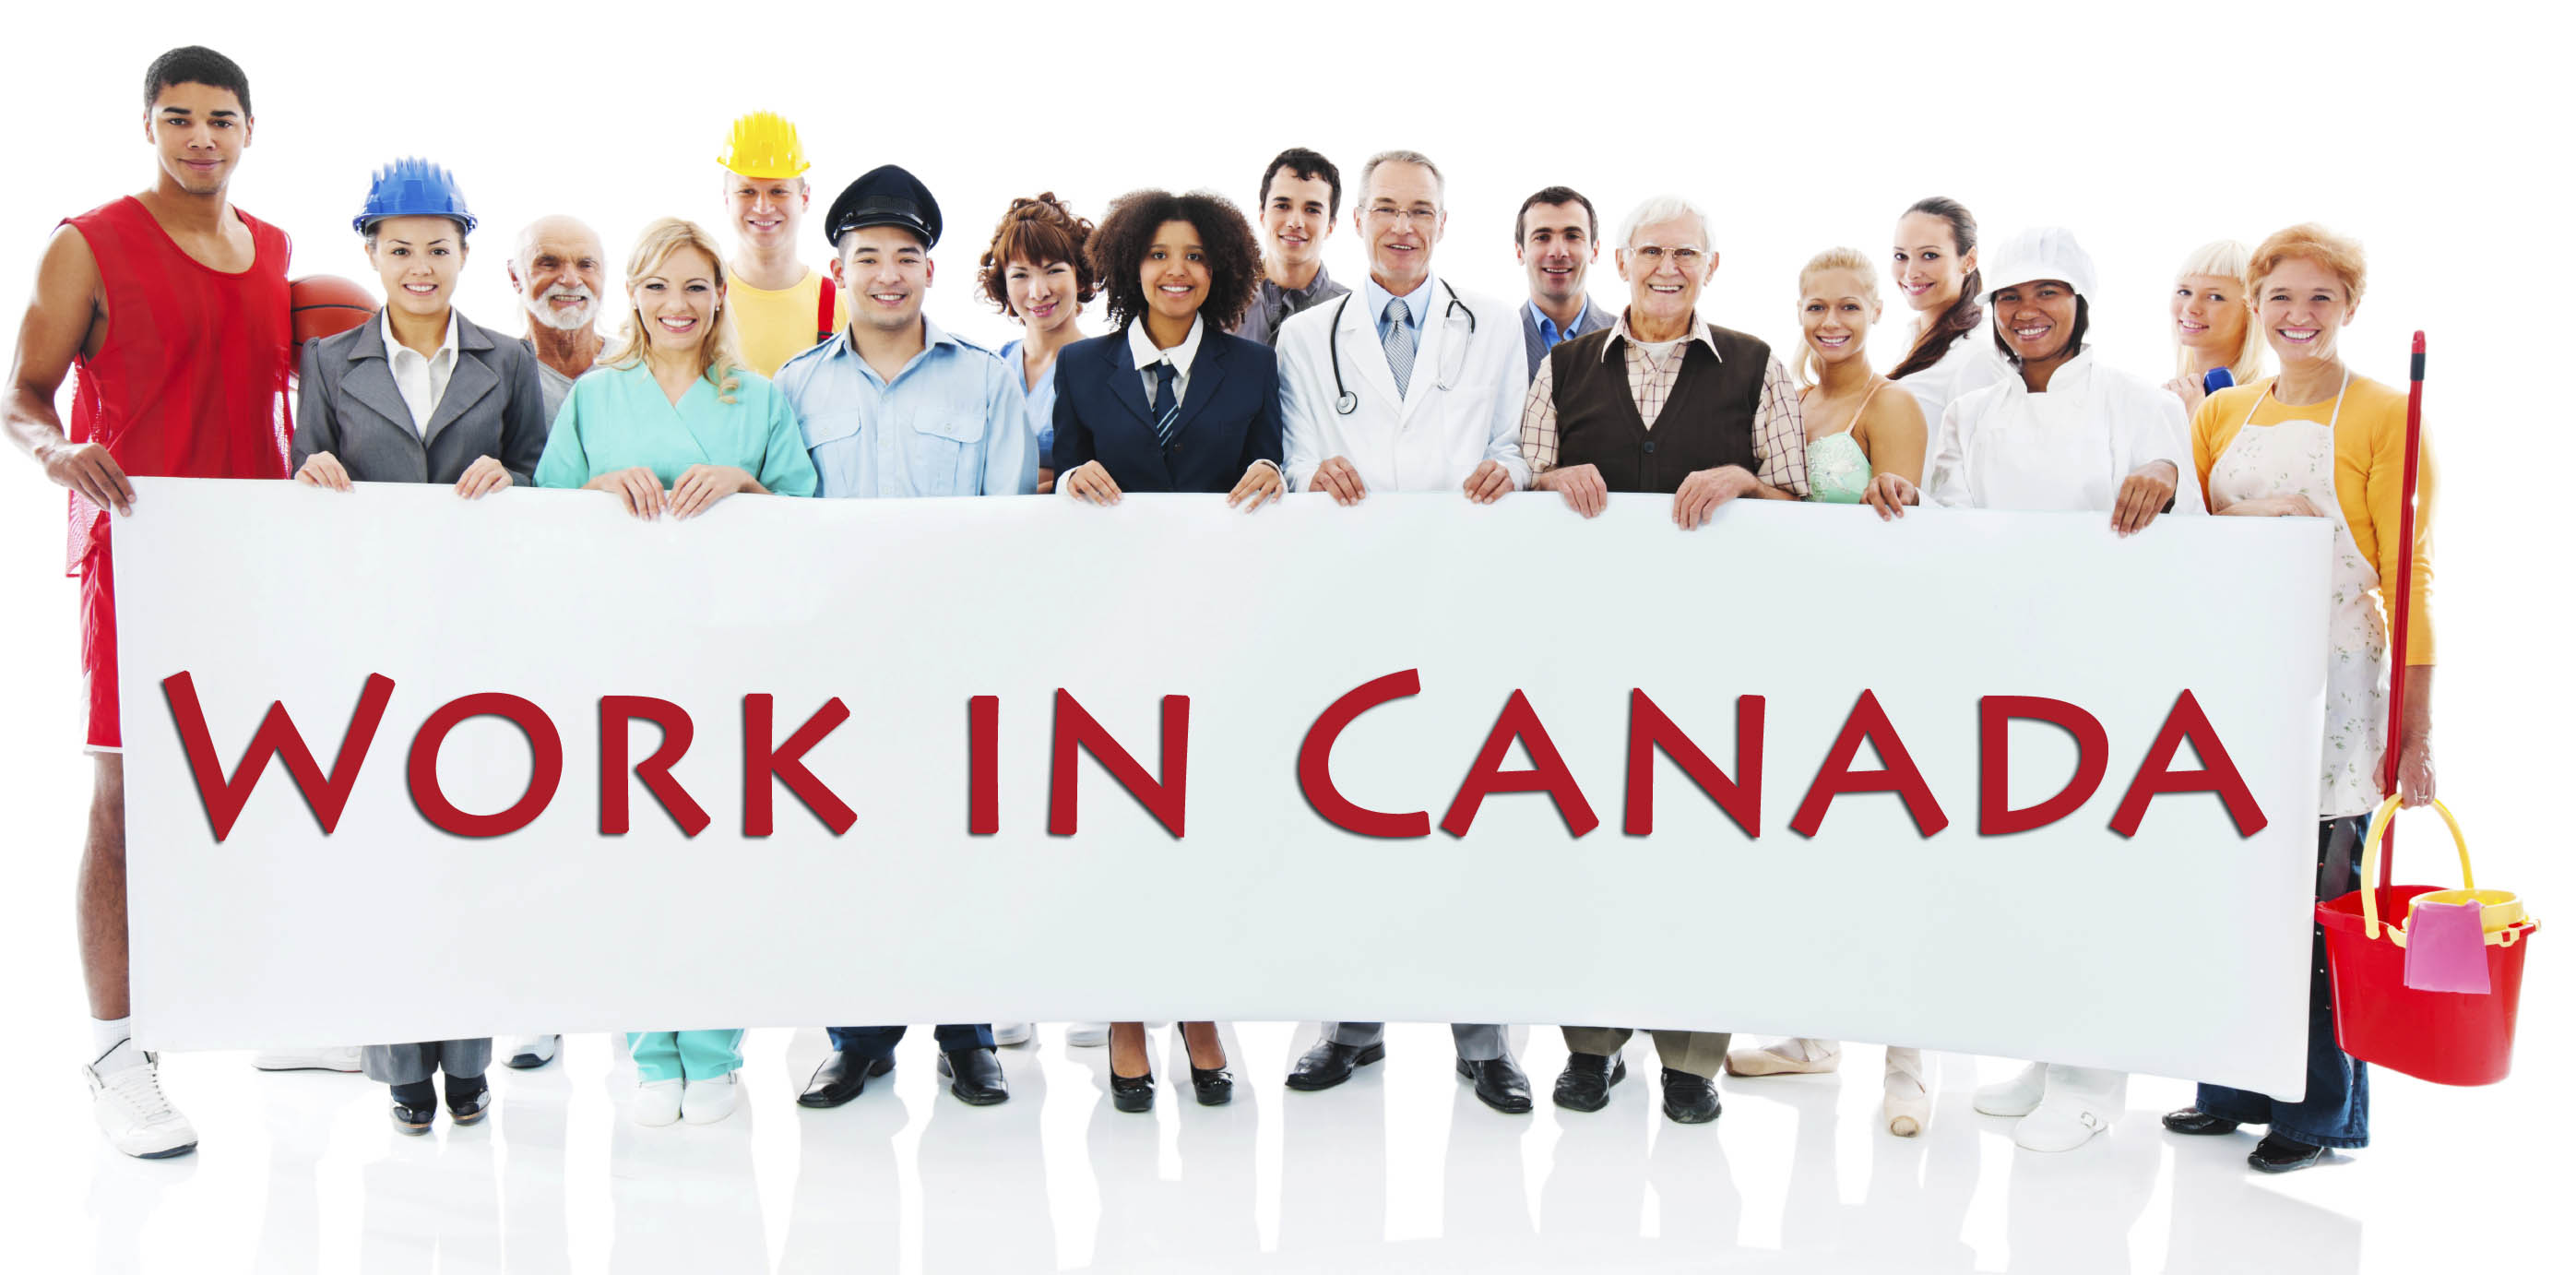 Jobs in Canada Mobile App Lets You Search and Apply for Jobs from Nigeria